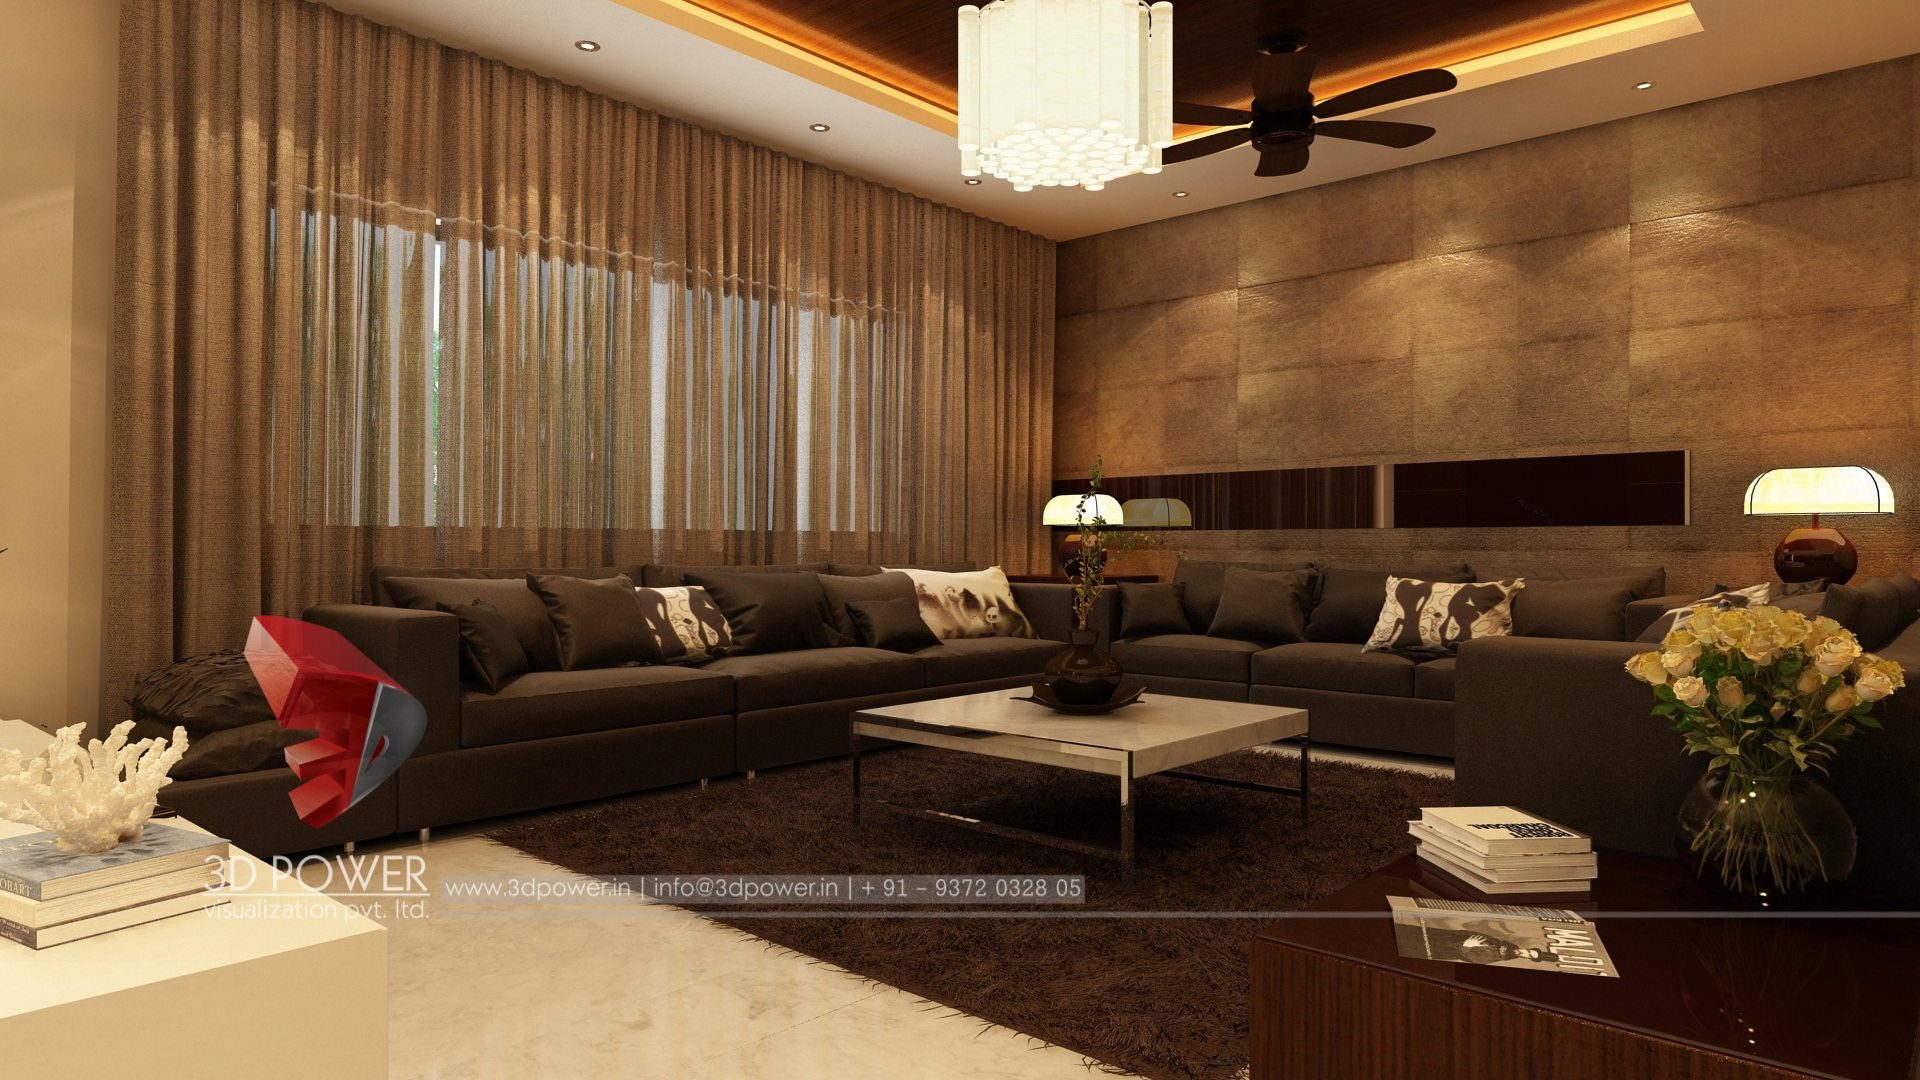 Site Décoration Intérieur 3d Interior Design And Rendering Services Bungalow And Home